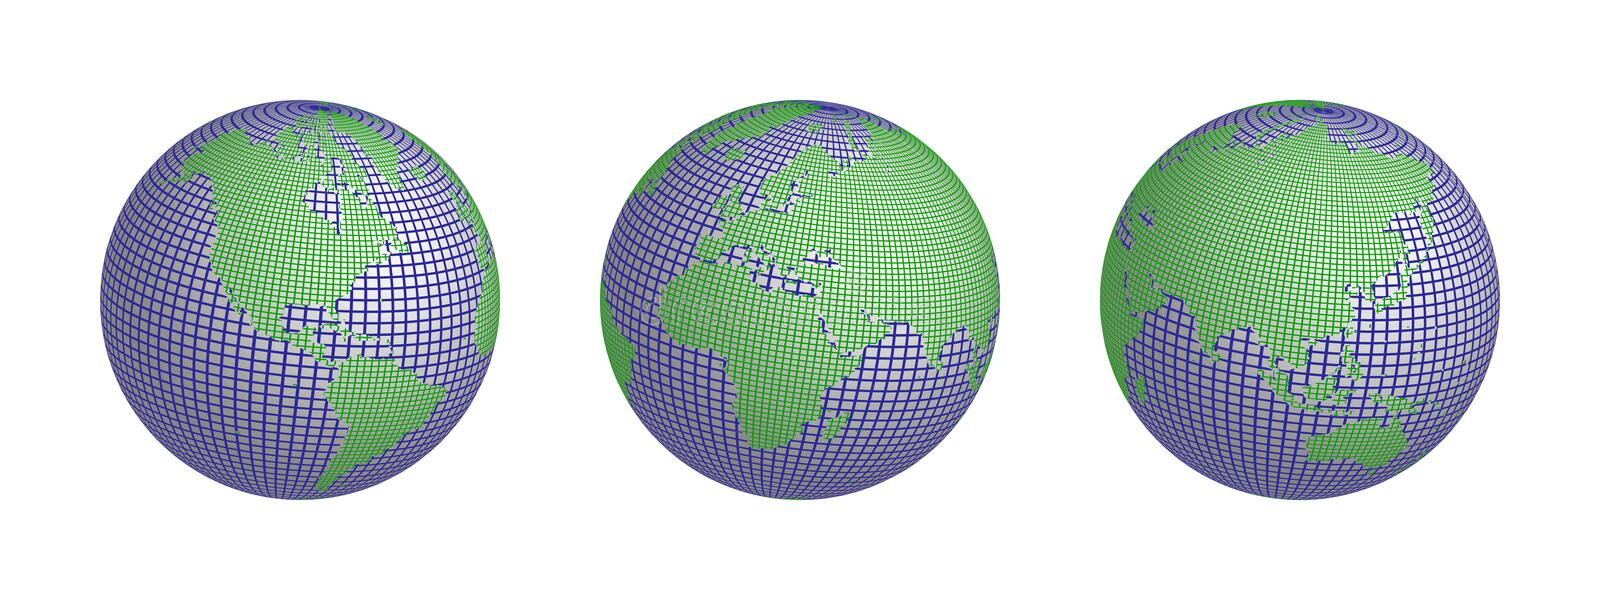 World wire 3 globes royalty free stock images